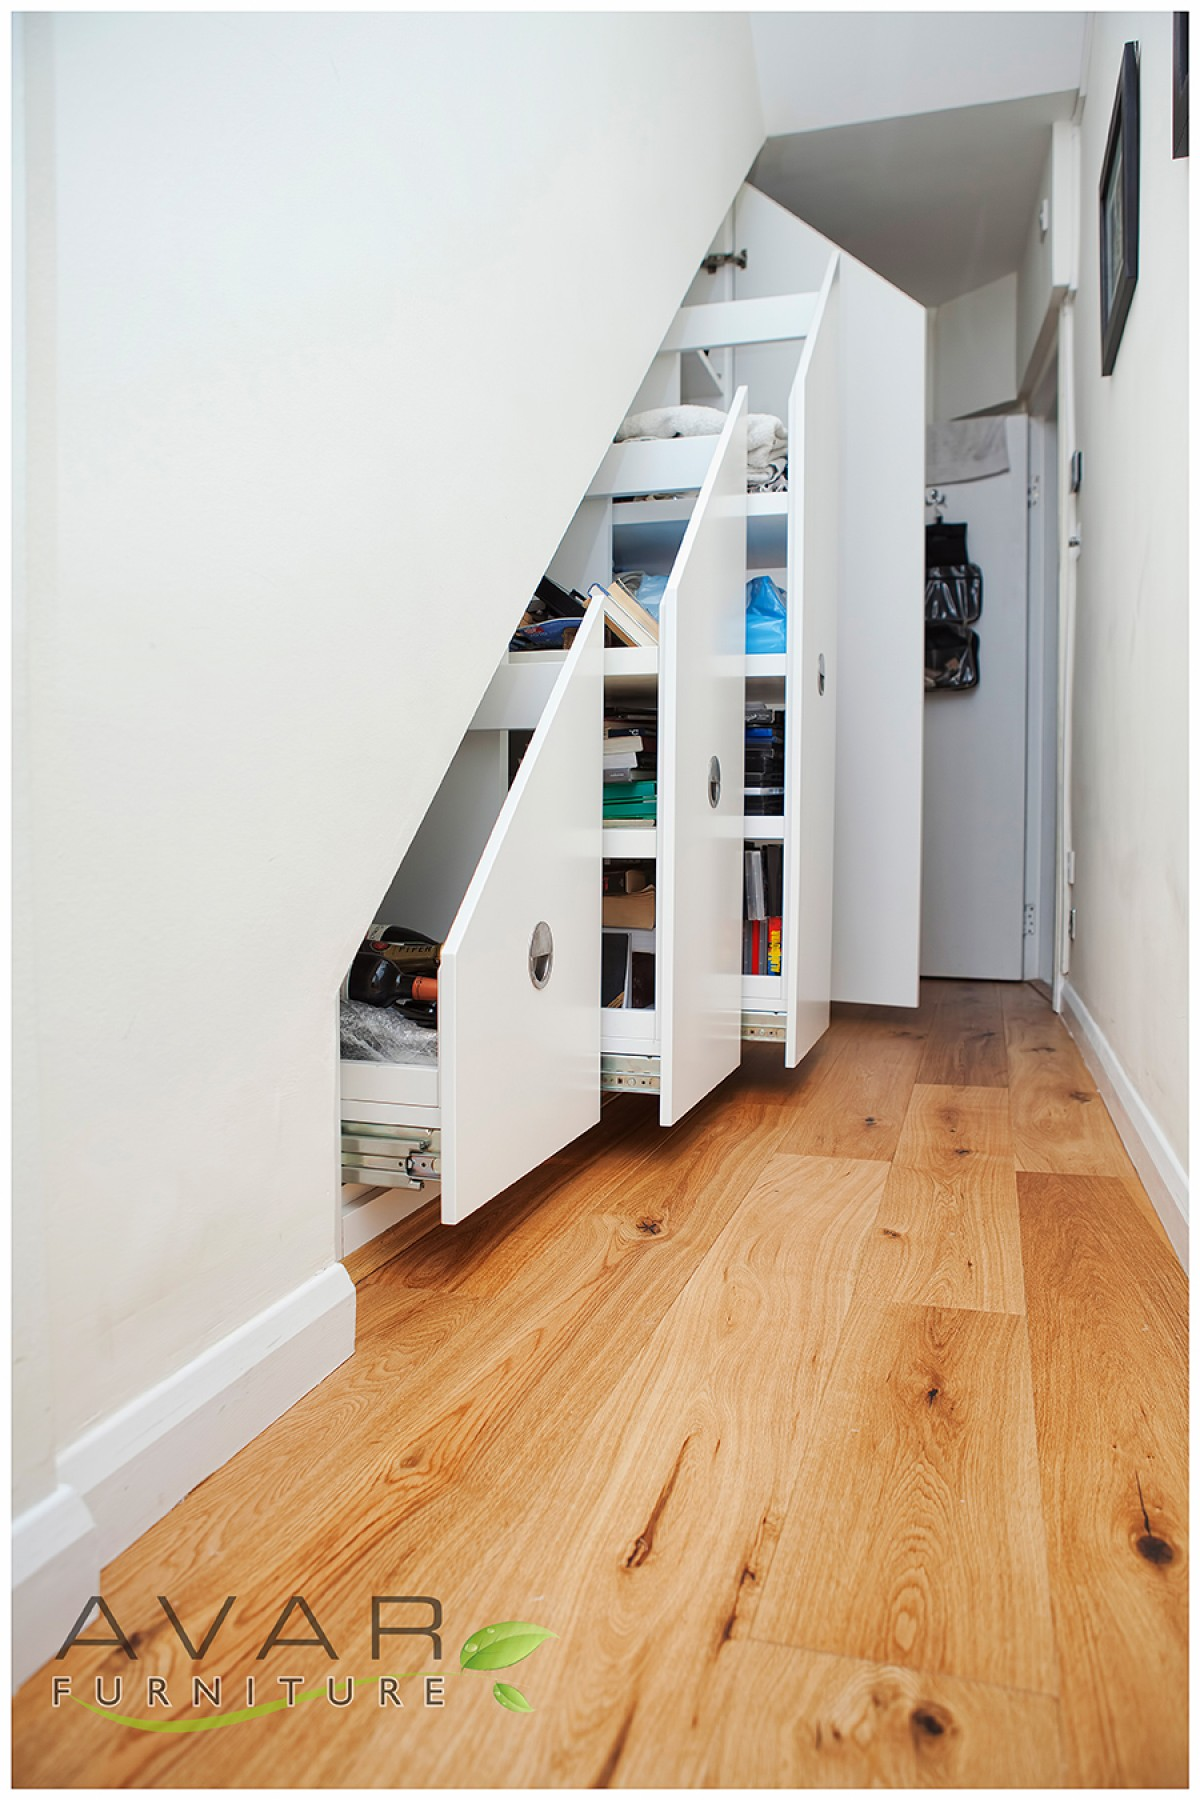 ƸӜƷ Under Stairs Storage Ideas Gallery 11 North London